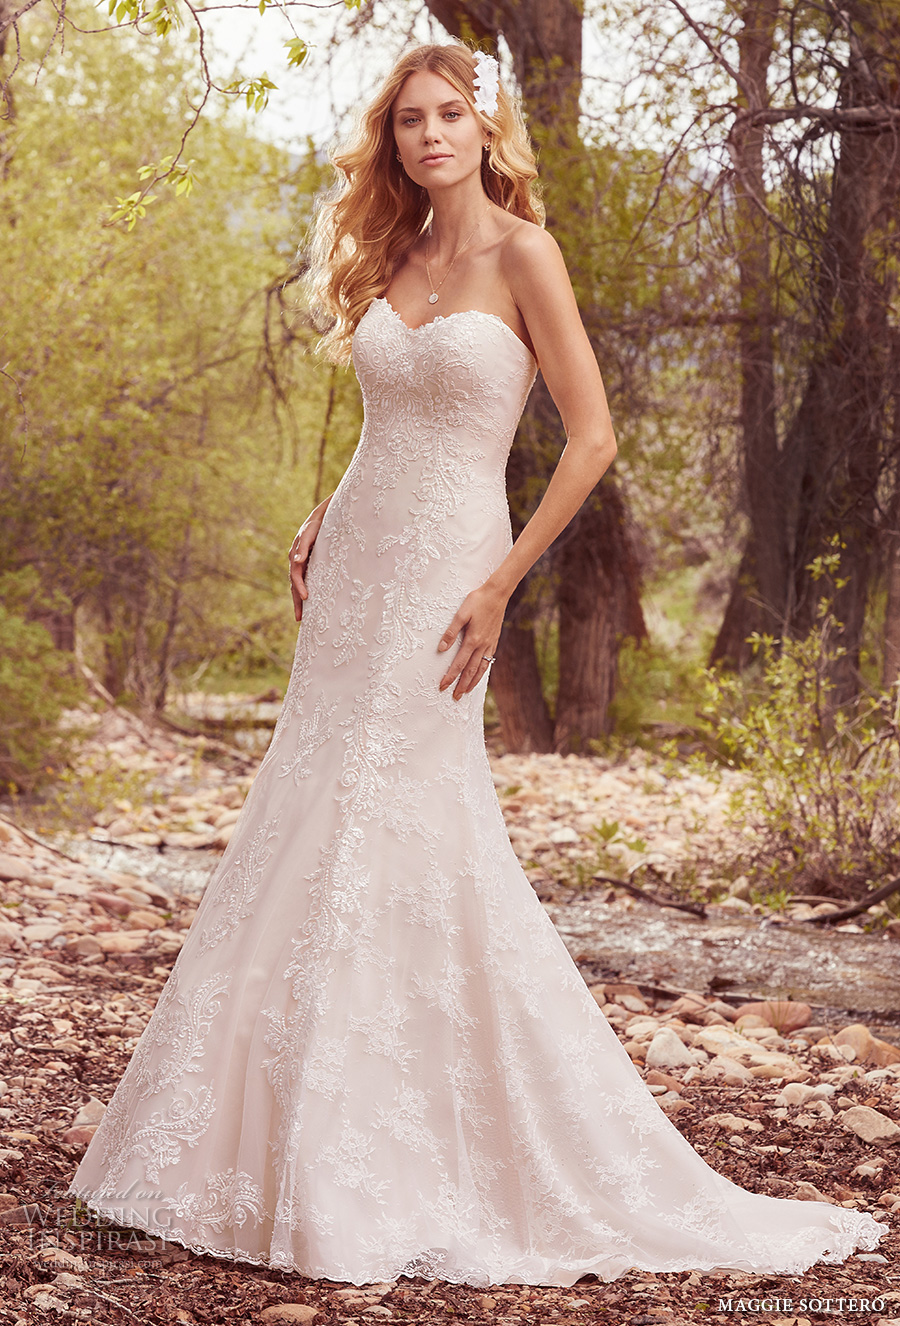 Maggie Sottero Spring 2017 Bridal Strapless Sweetheart Neckline Full Embellishment Trumpet Wedding Dress Chapel Train